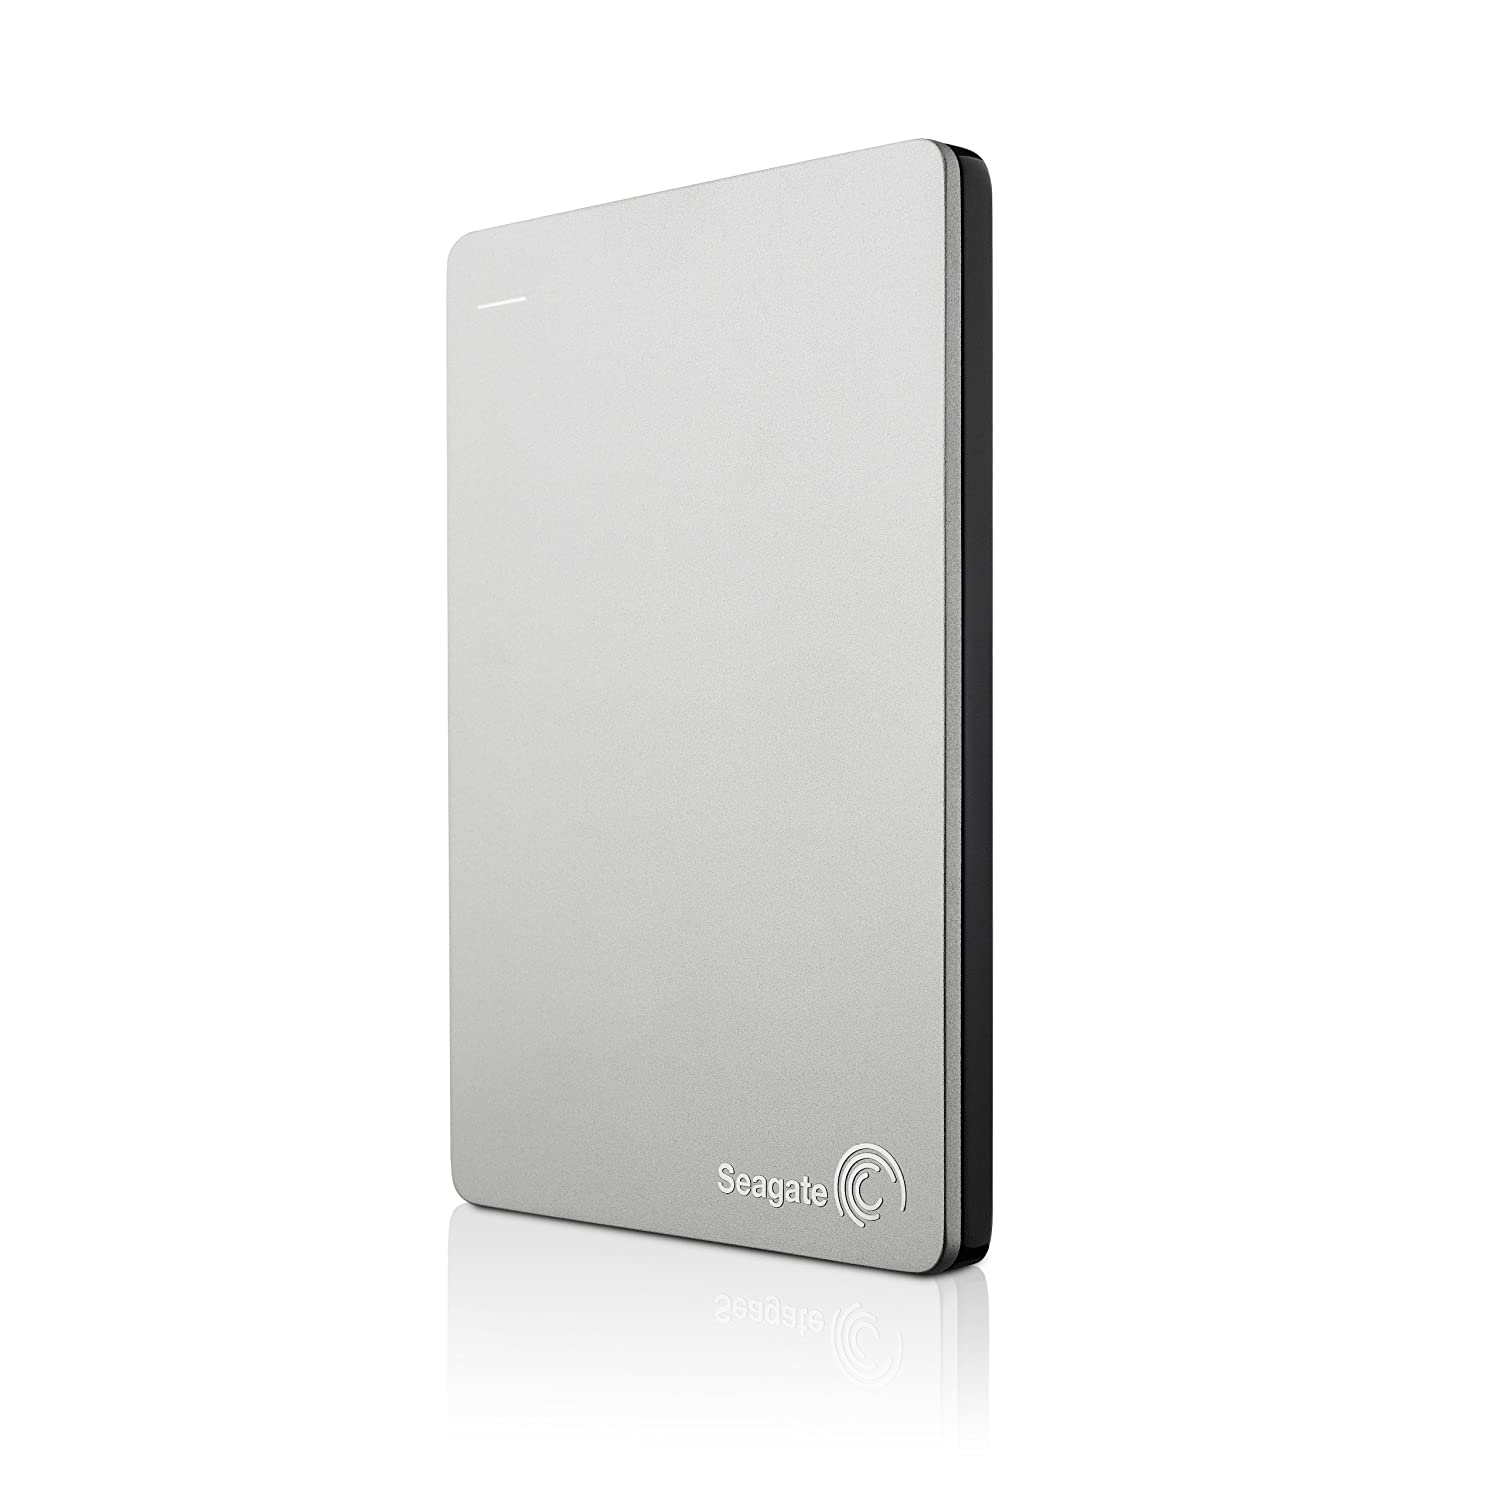 Seagate Backup Plus Slim 500gb Portable Hard Drive For Mac With